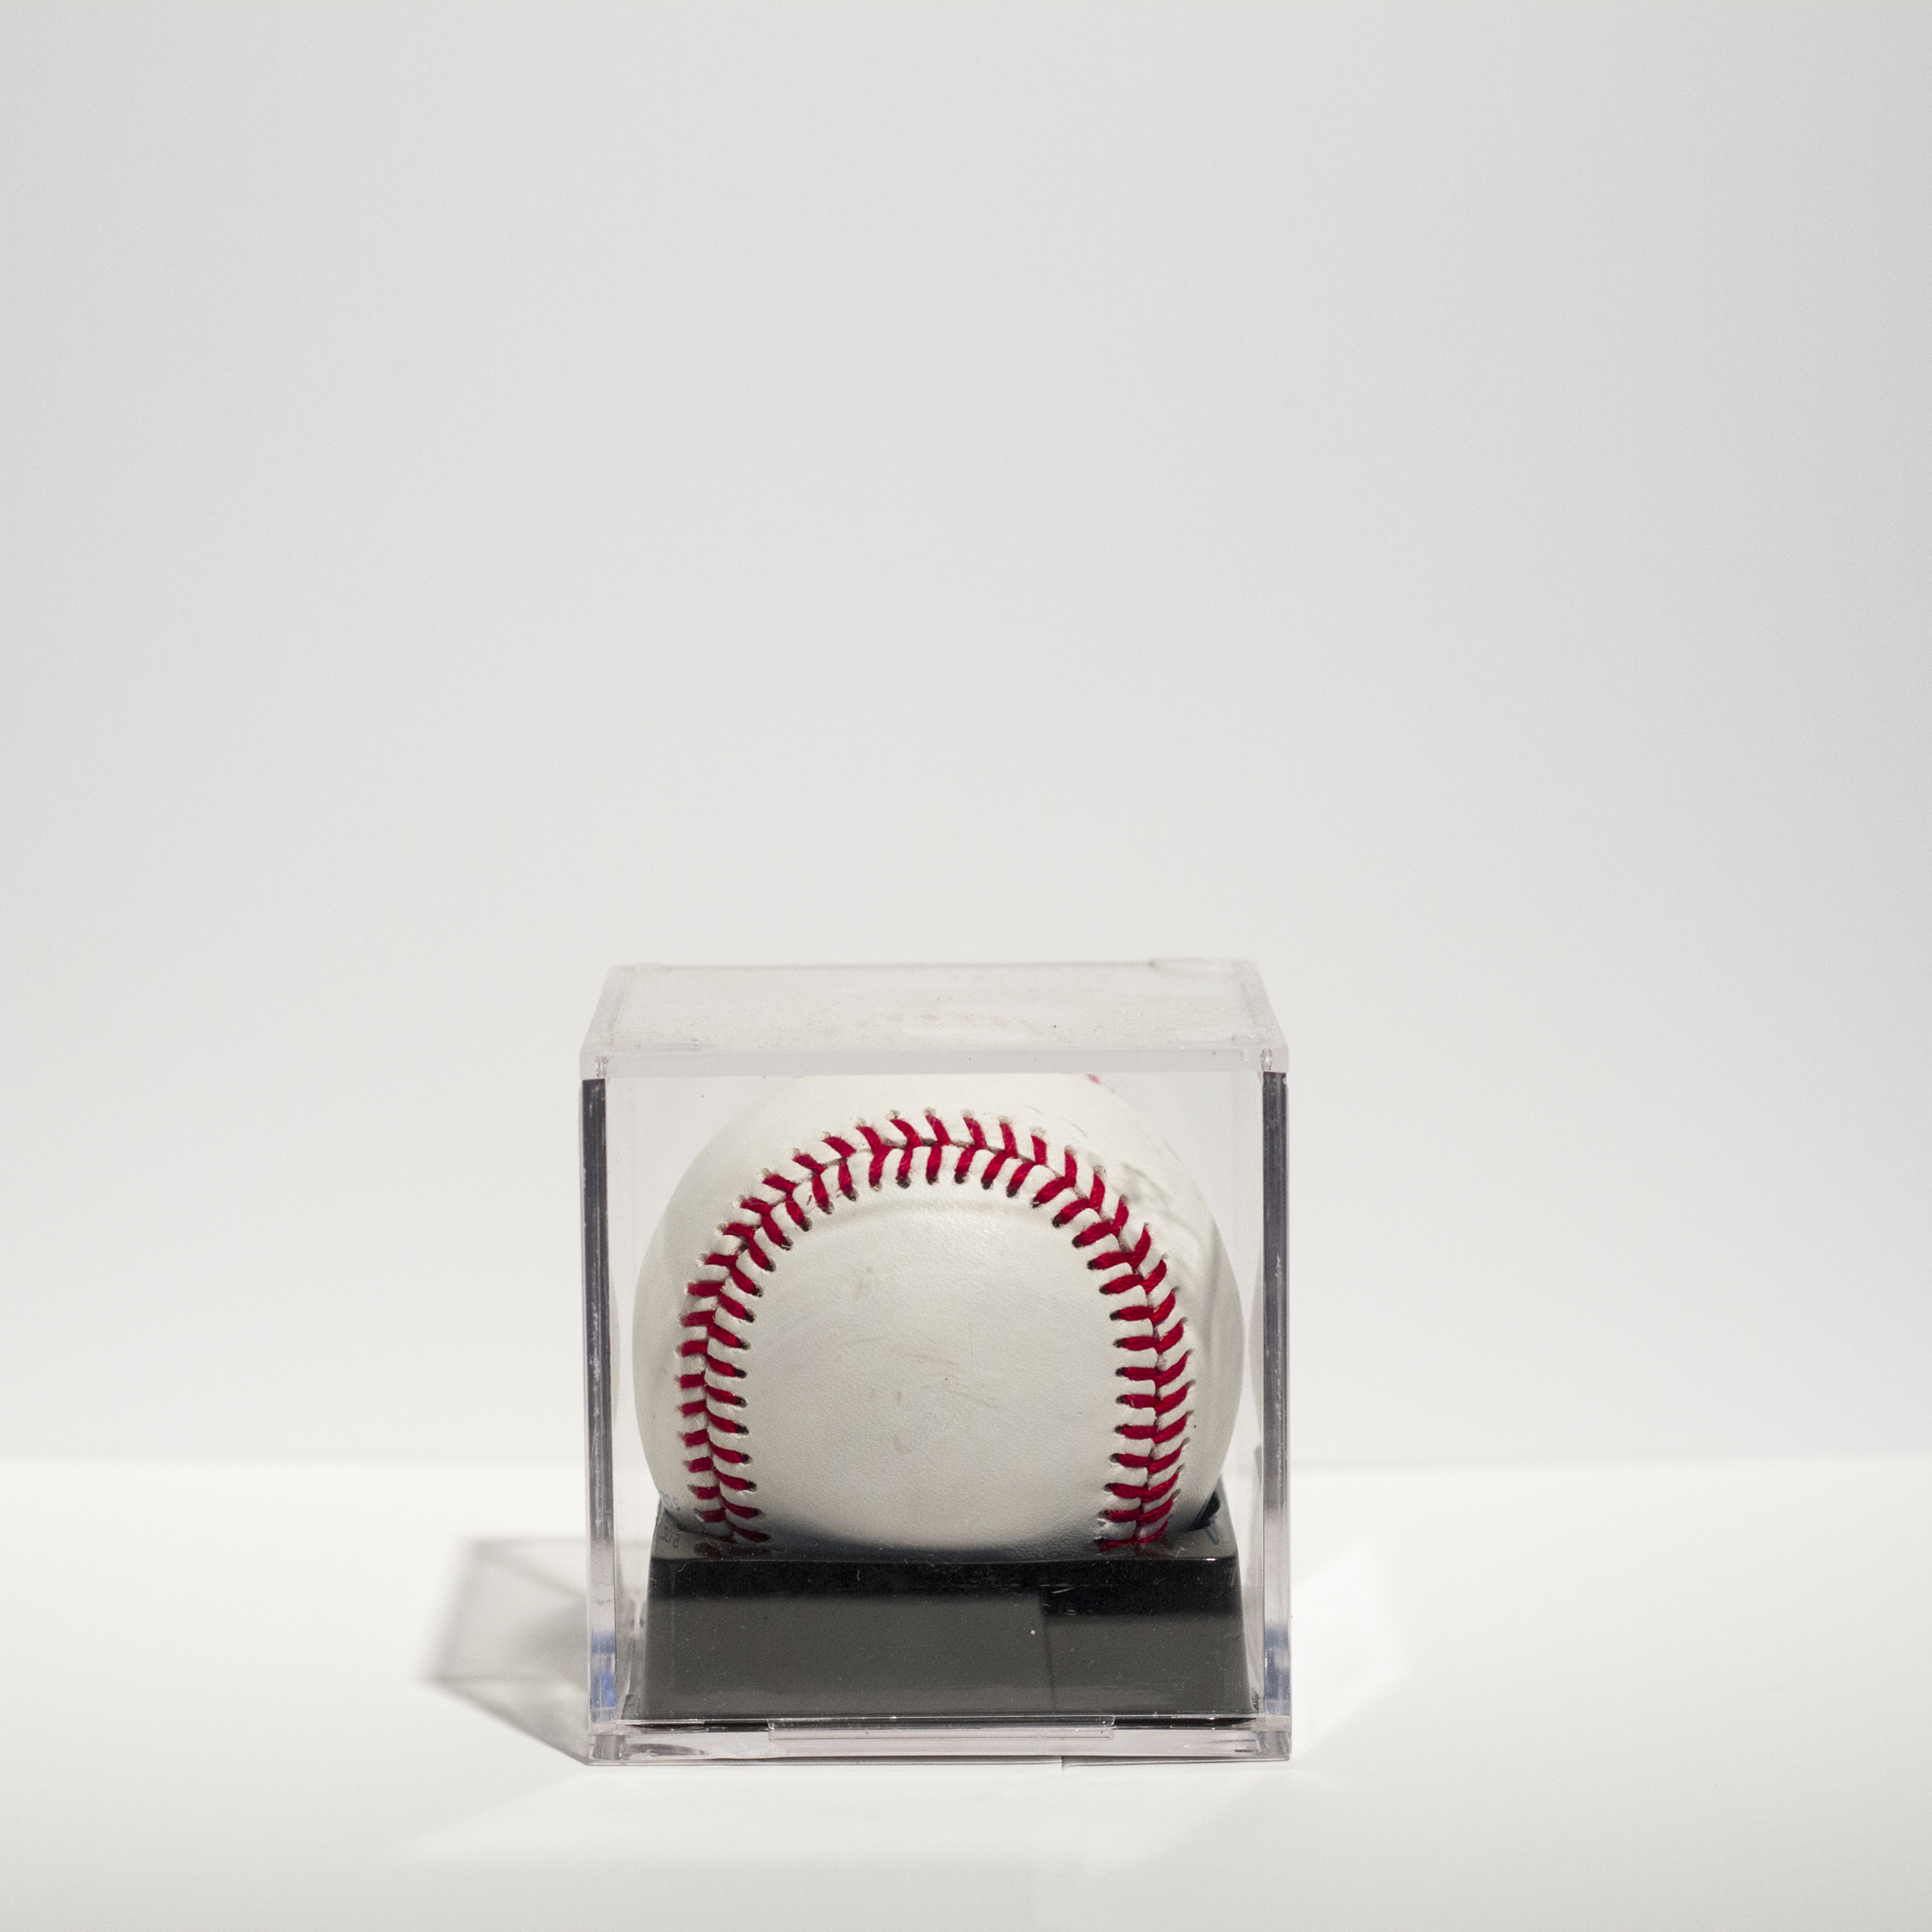 "Coconut (I),    —  3"" x 3"" x 3"" baseball filled with artists hair in memorabilia case."